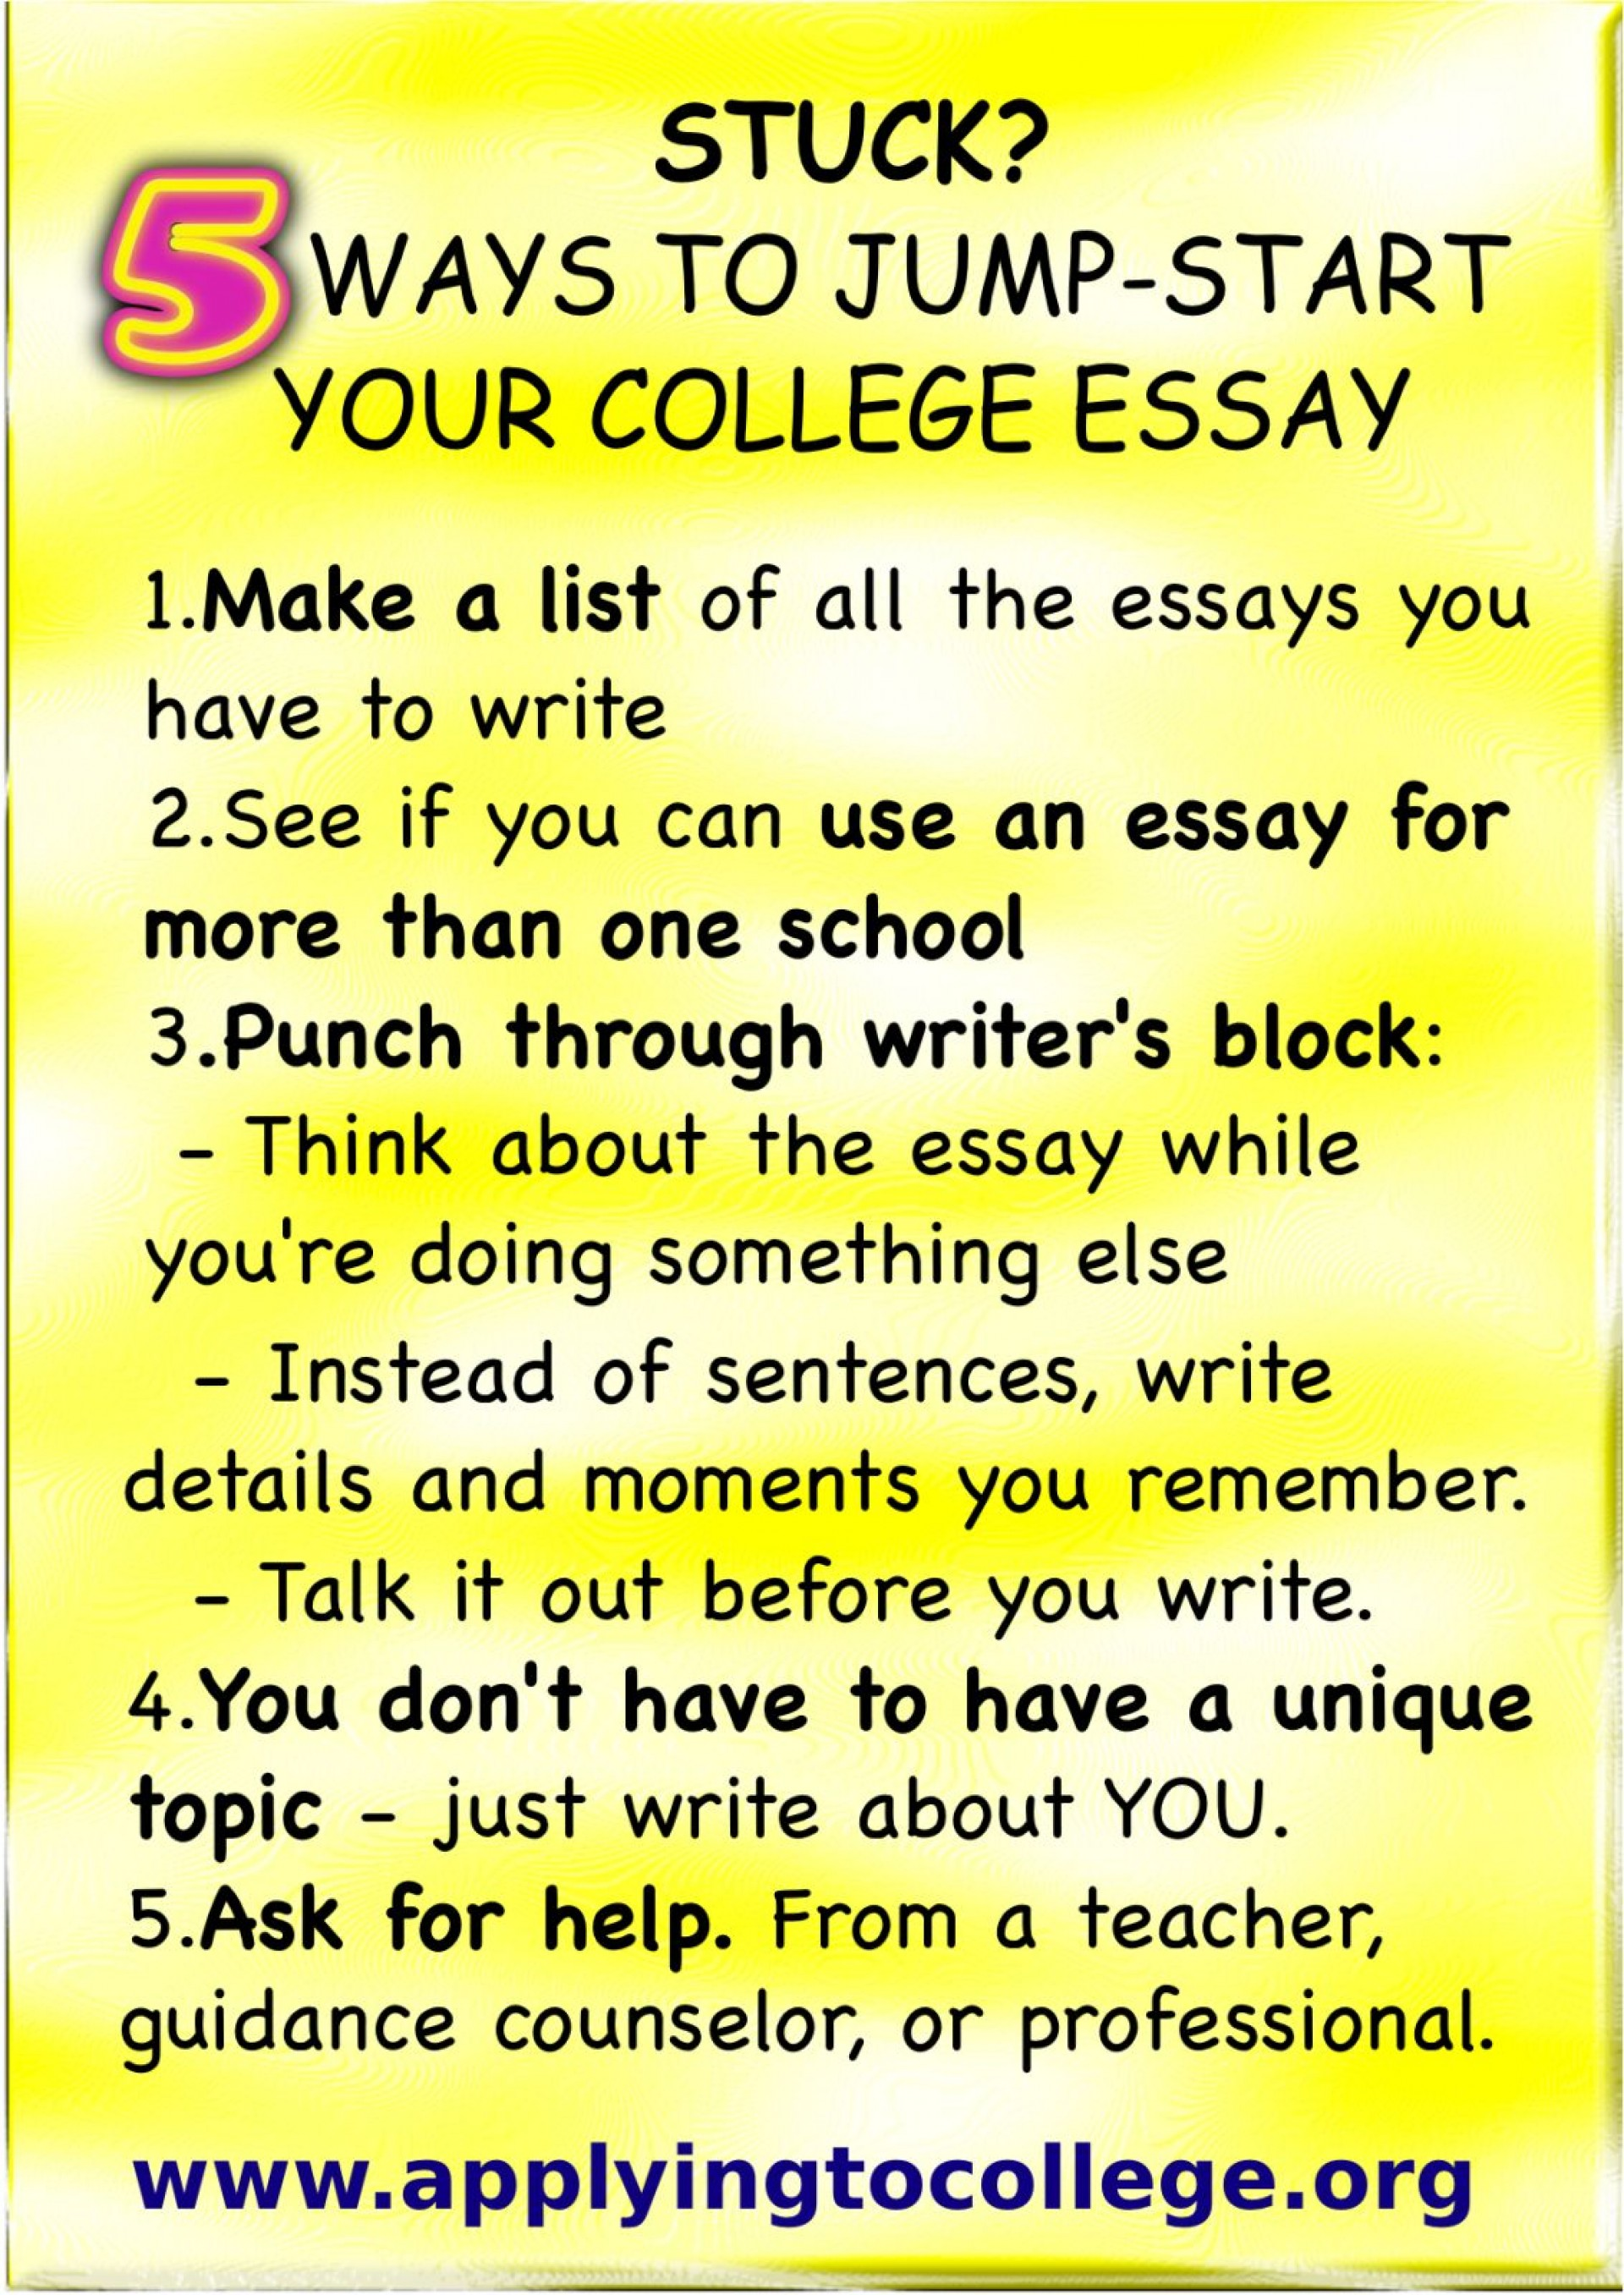 001 Essay Example College Phenomenal Tips From Admission Counselors Application Personal Statement And Tricks 1920